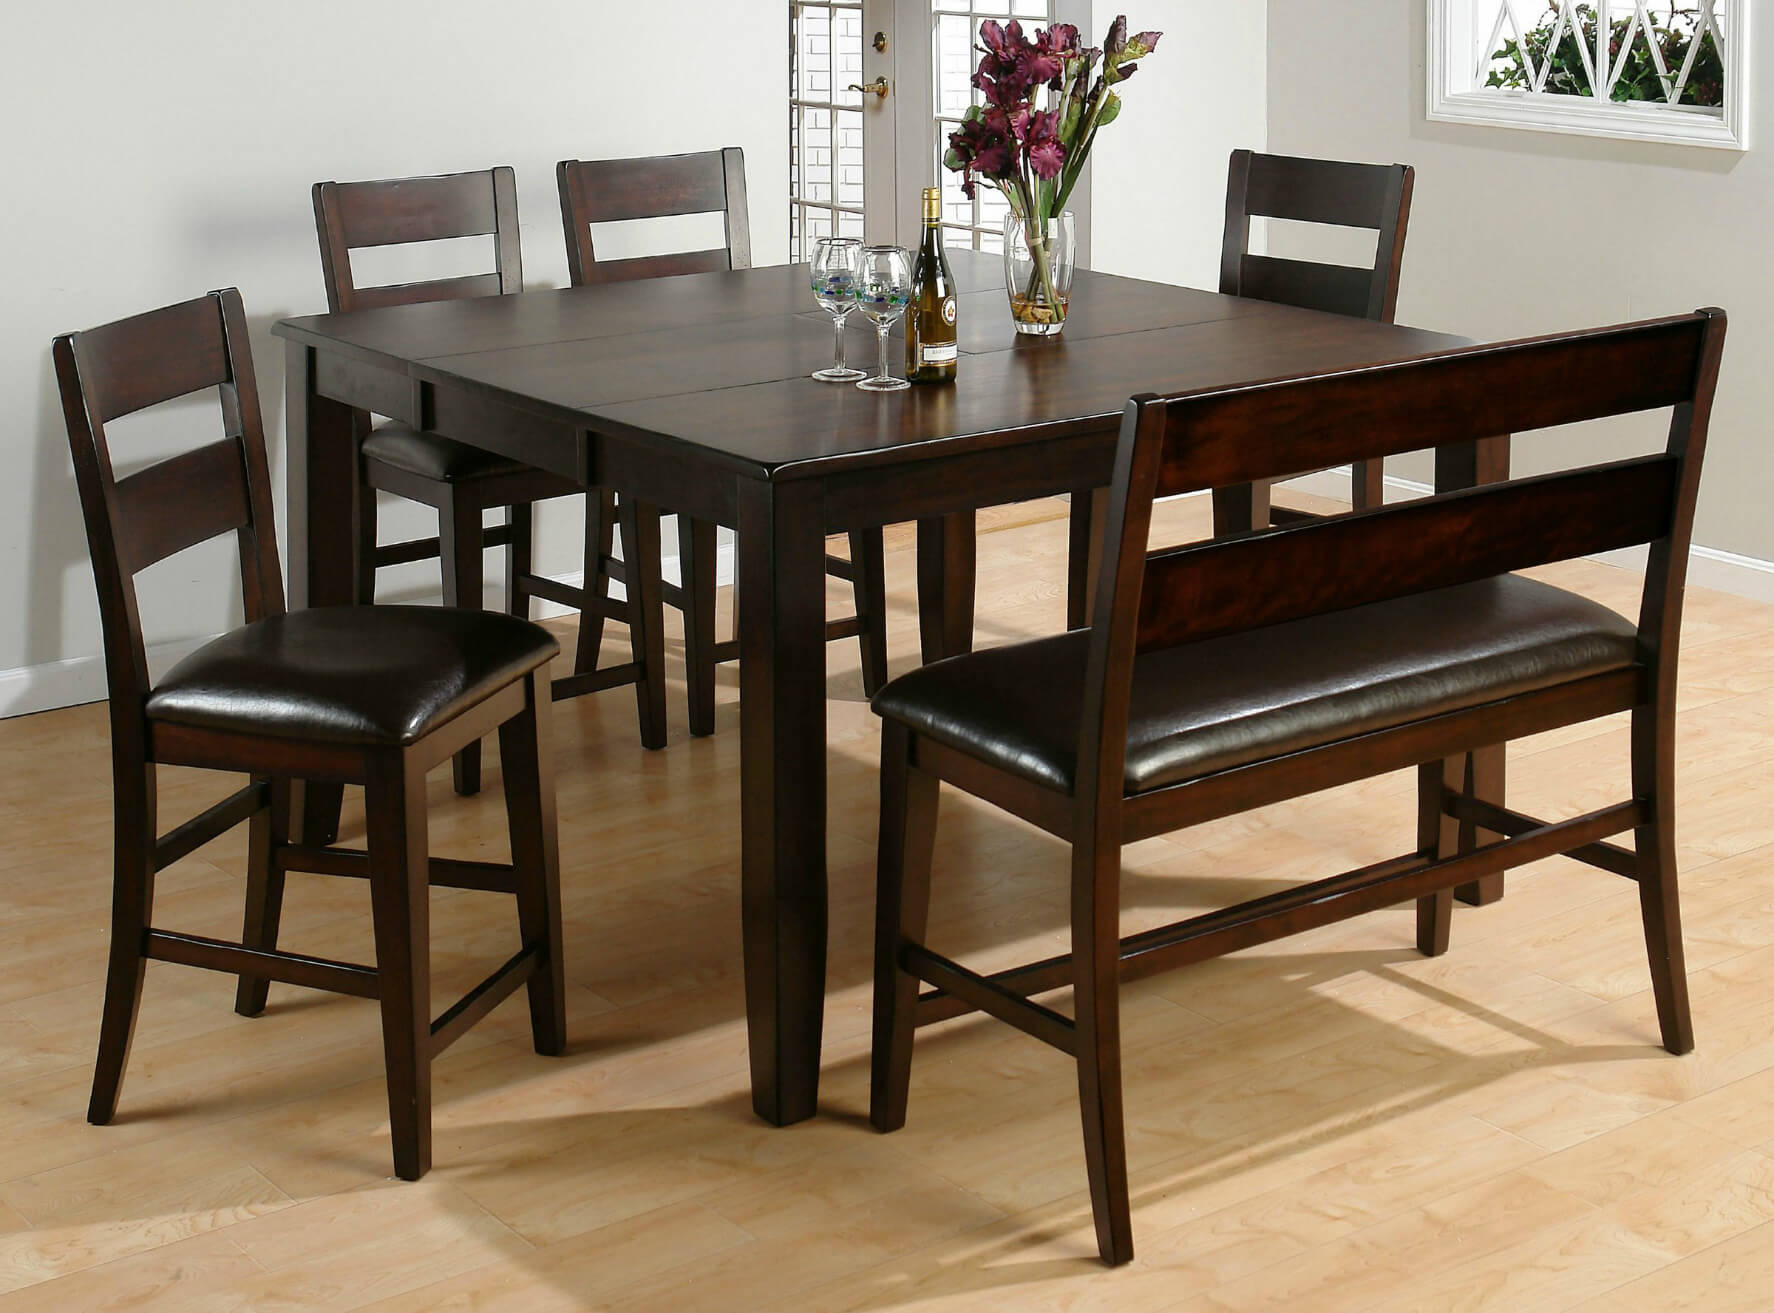 High Bench Table 26 Big And Small Dining Room Sets With Bench Seating